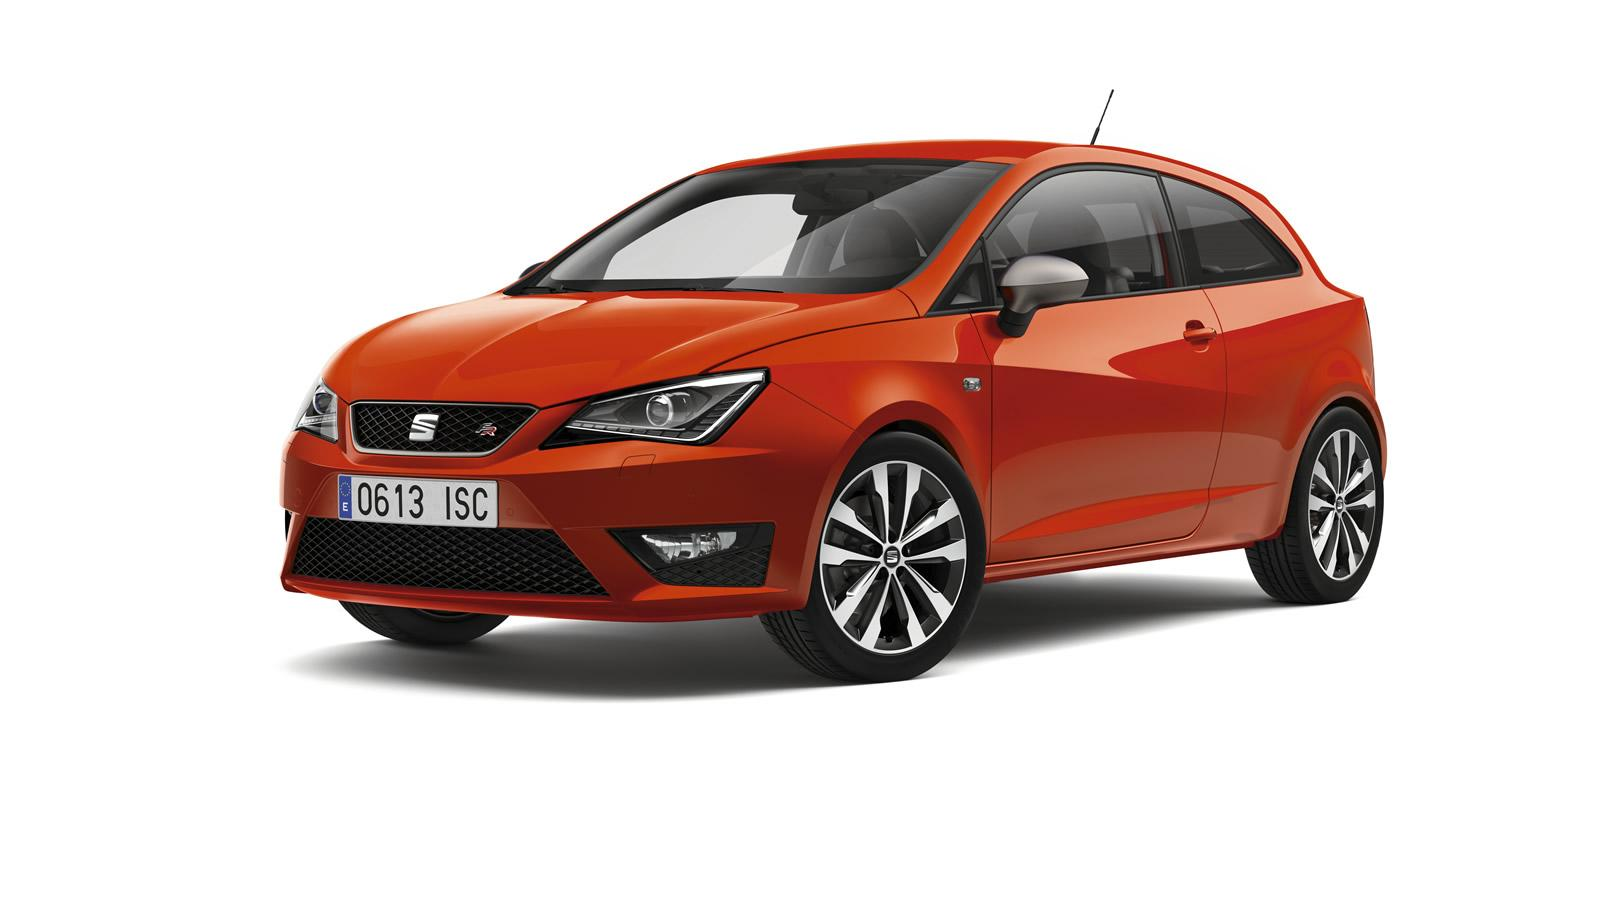 2015 seat ibiza facelift gets leon interior bits minor cosmetic tweaks autoevolution. Black Bedroom Furniture Sets. Home Design Ideas